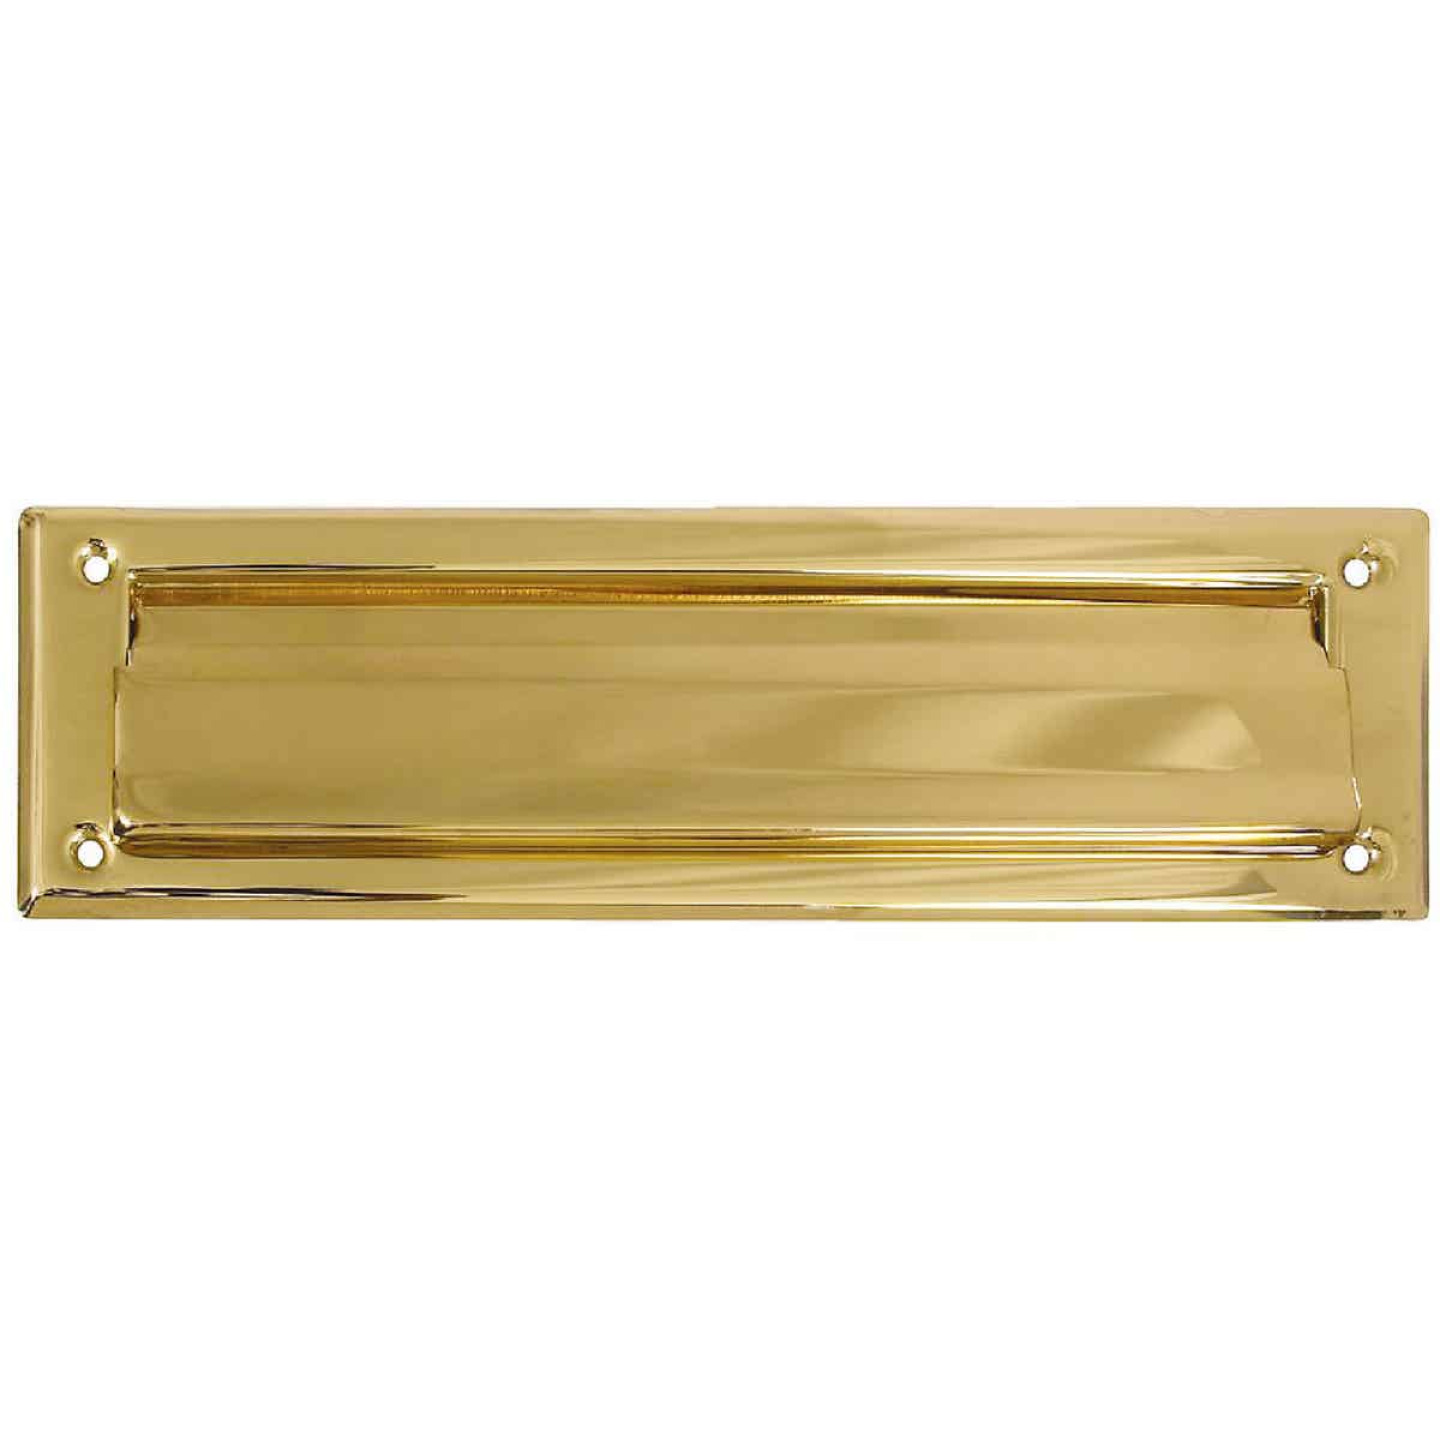 National 2 In. x 11 In. Polished Brass Mail Slot Image 1